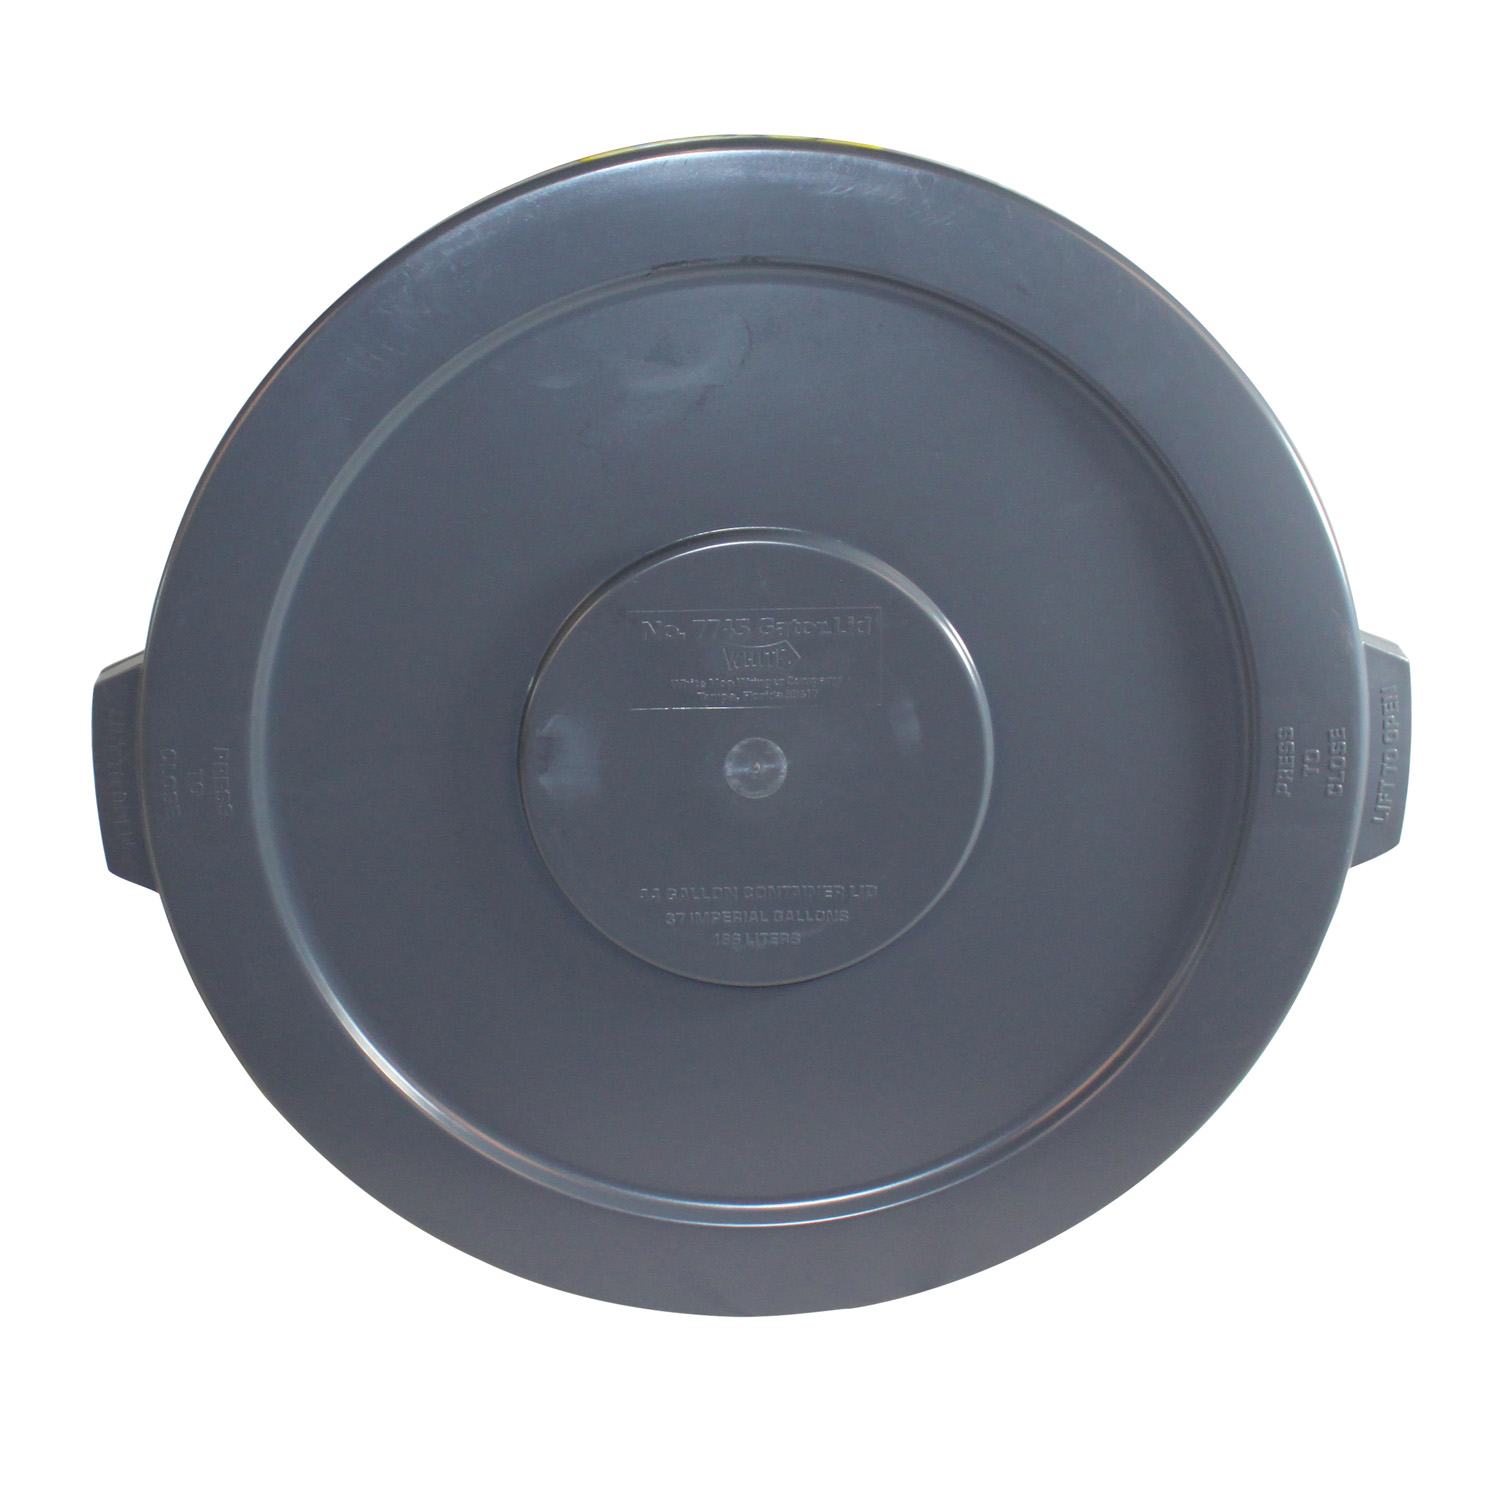 3700-043 Impact Products 7745-3 trash receptacle lid / top